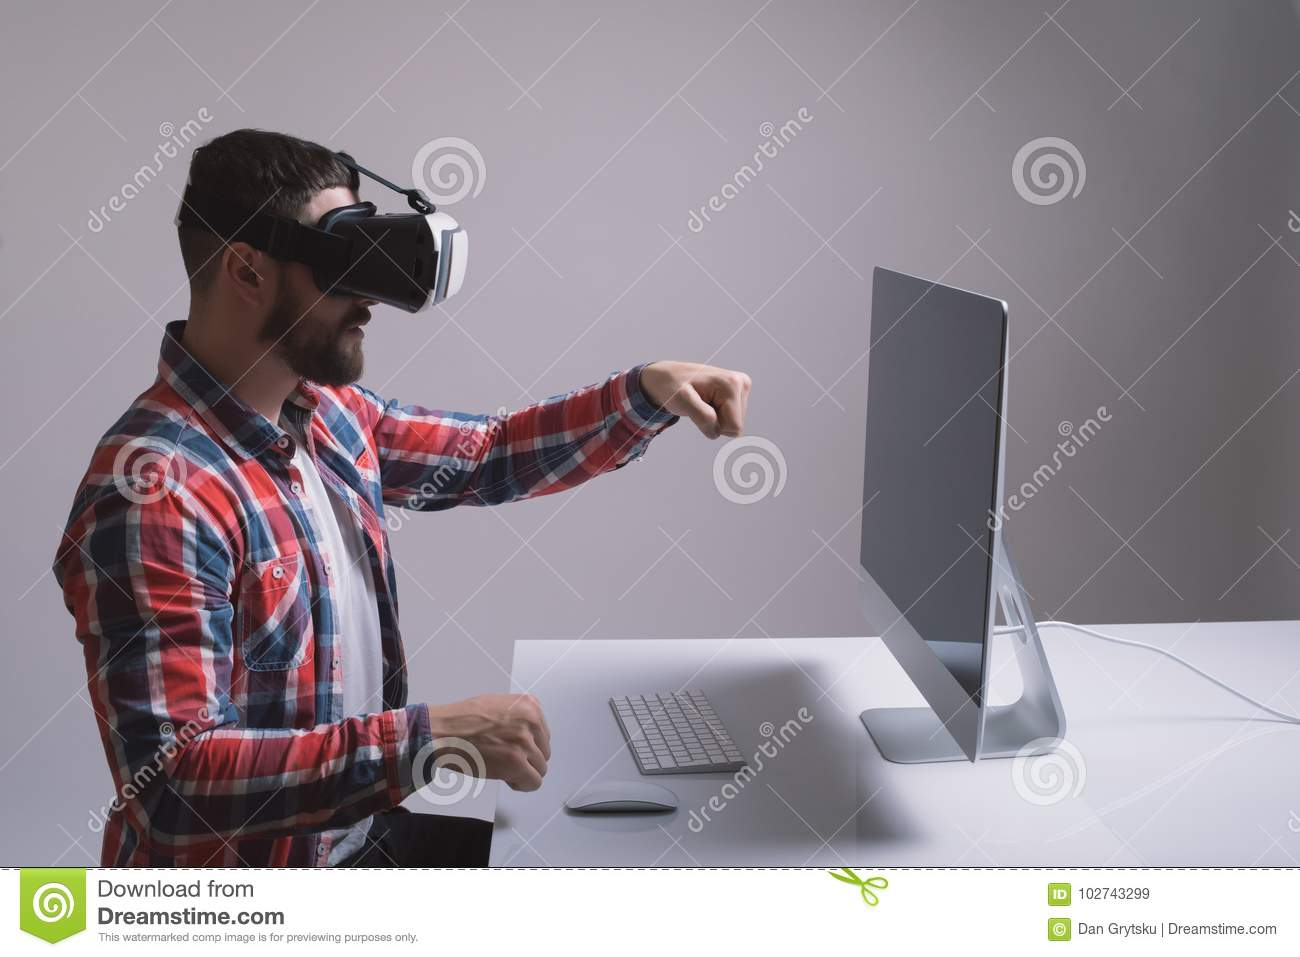 d4aa29de1c0 Man in helmet virtual reality plays game. Man uses VR-headset display with  headphones for virtual reality game in office. High-tech devices.